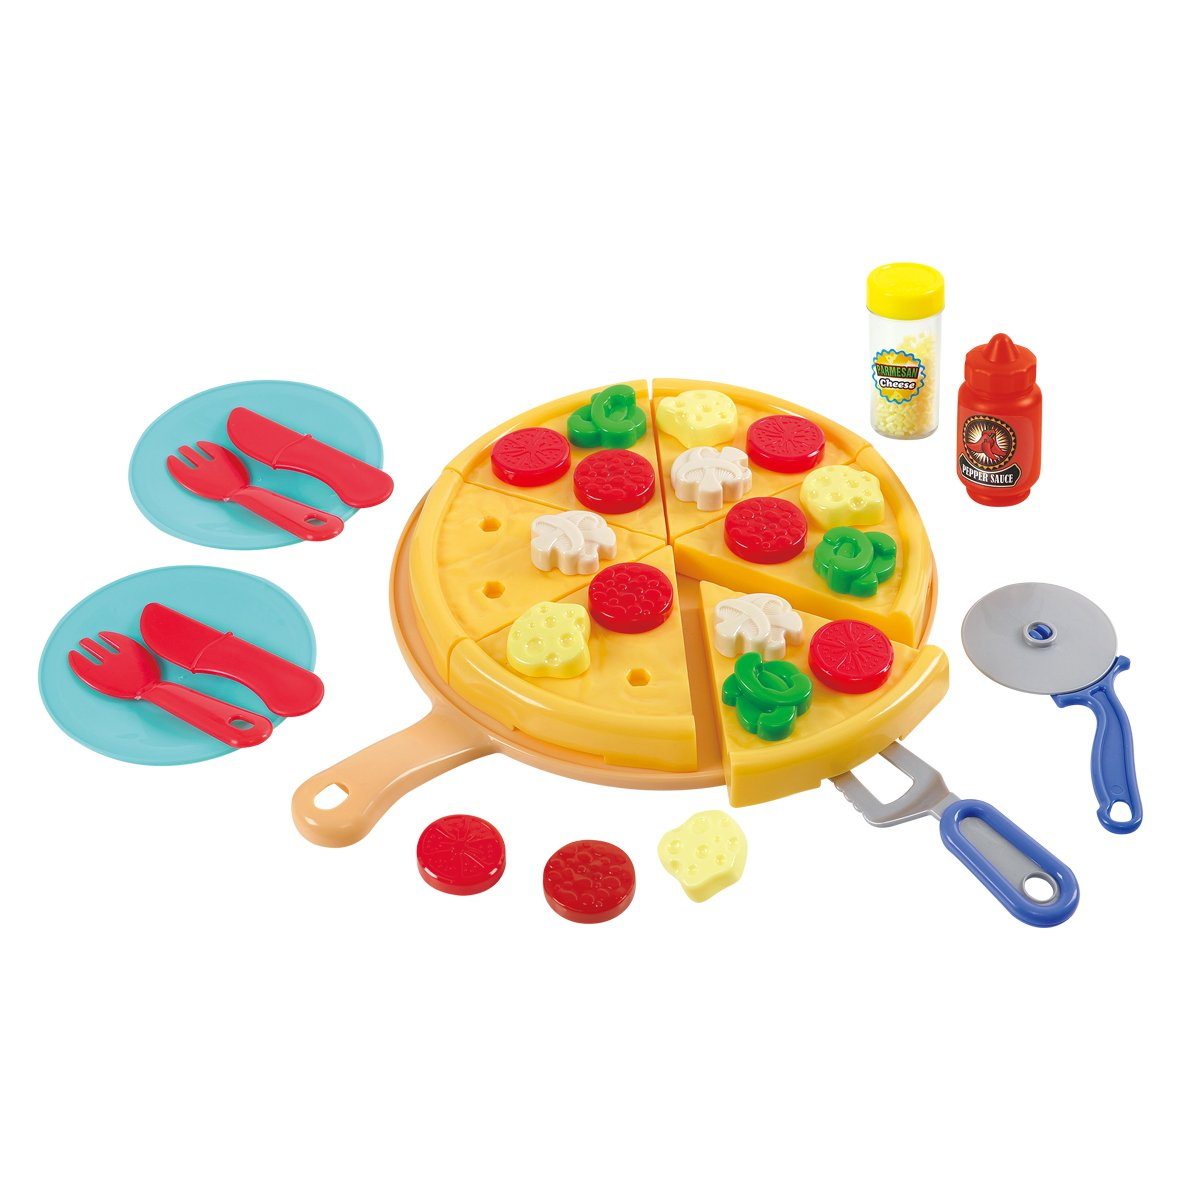 PlayGo Make & Serve Pizza Toy Kitchen Products